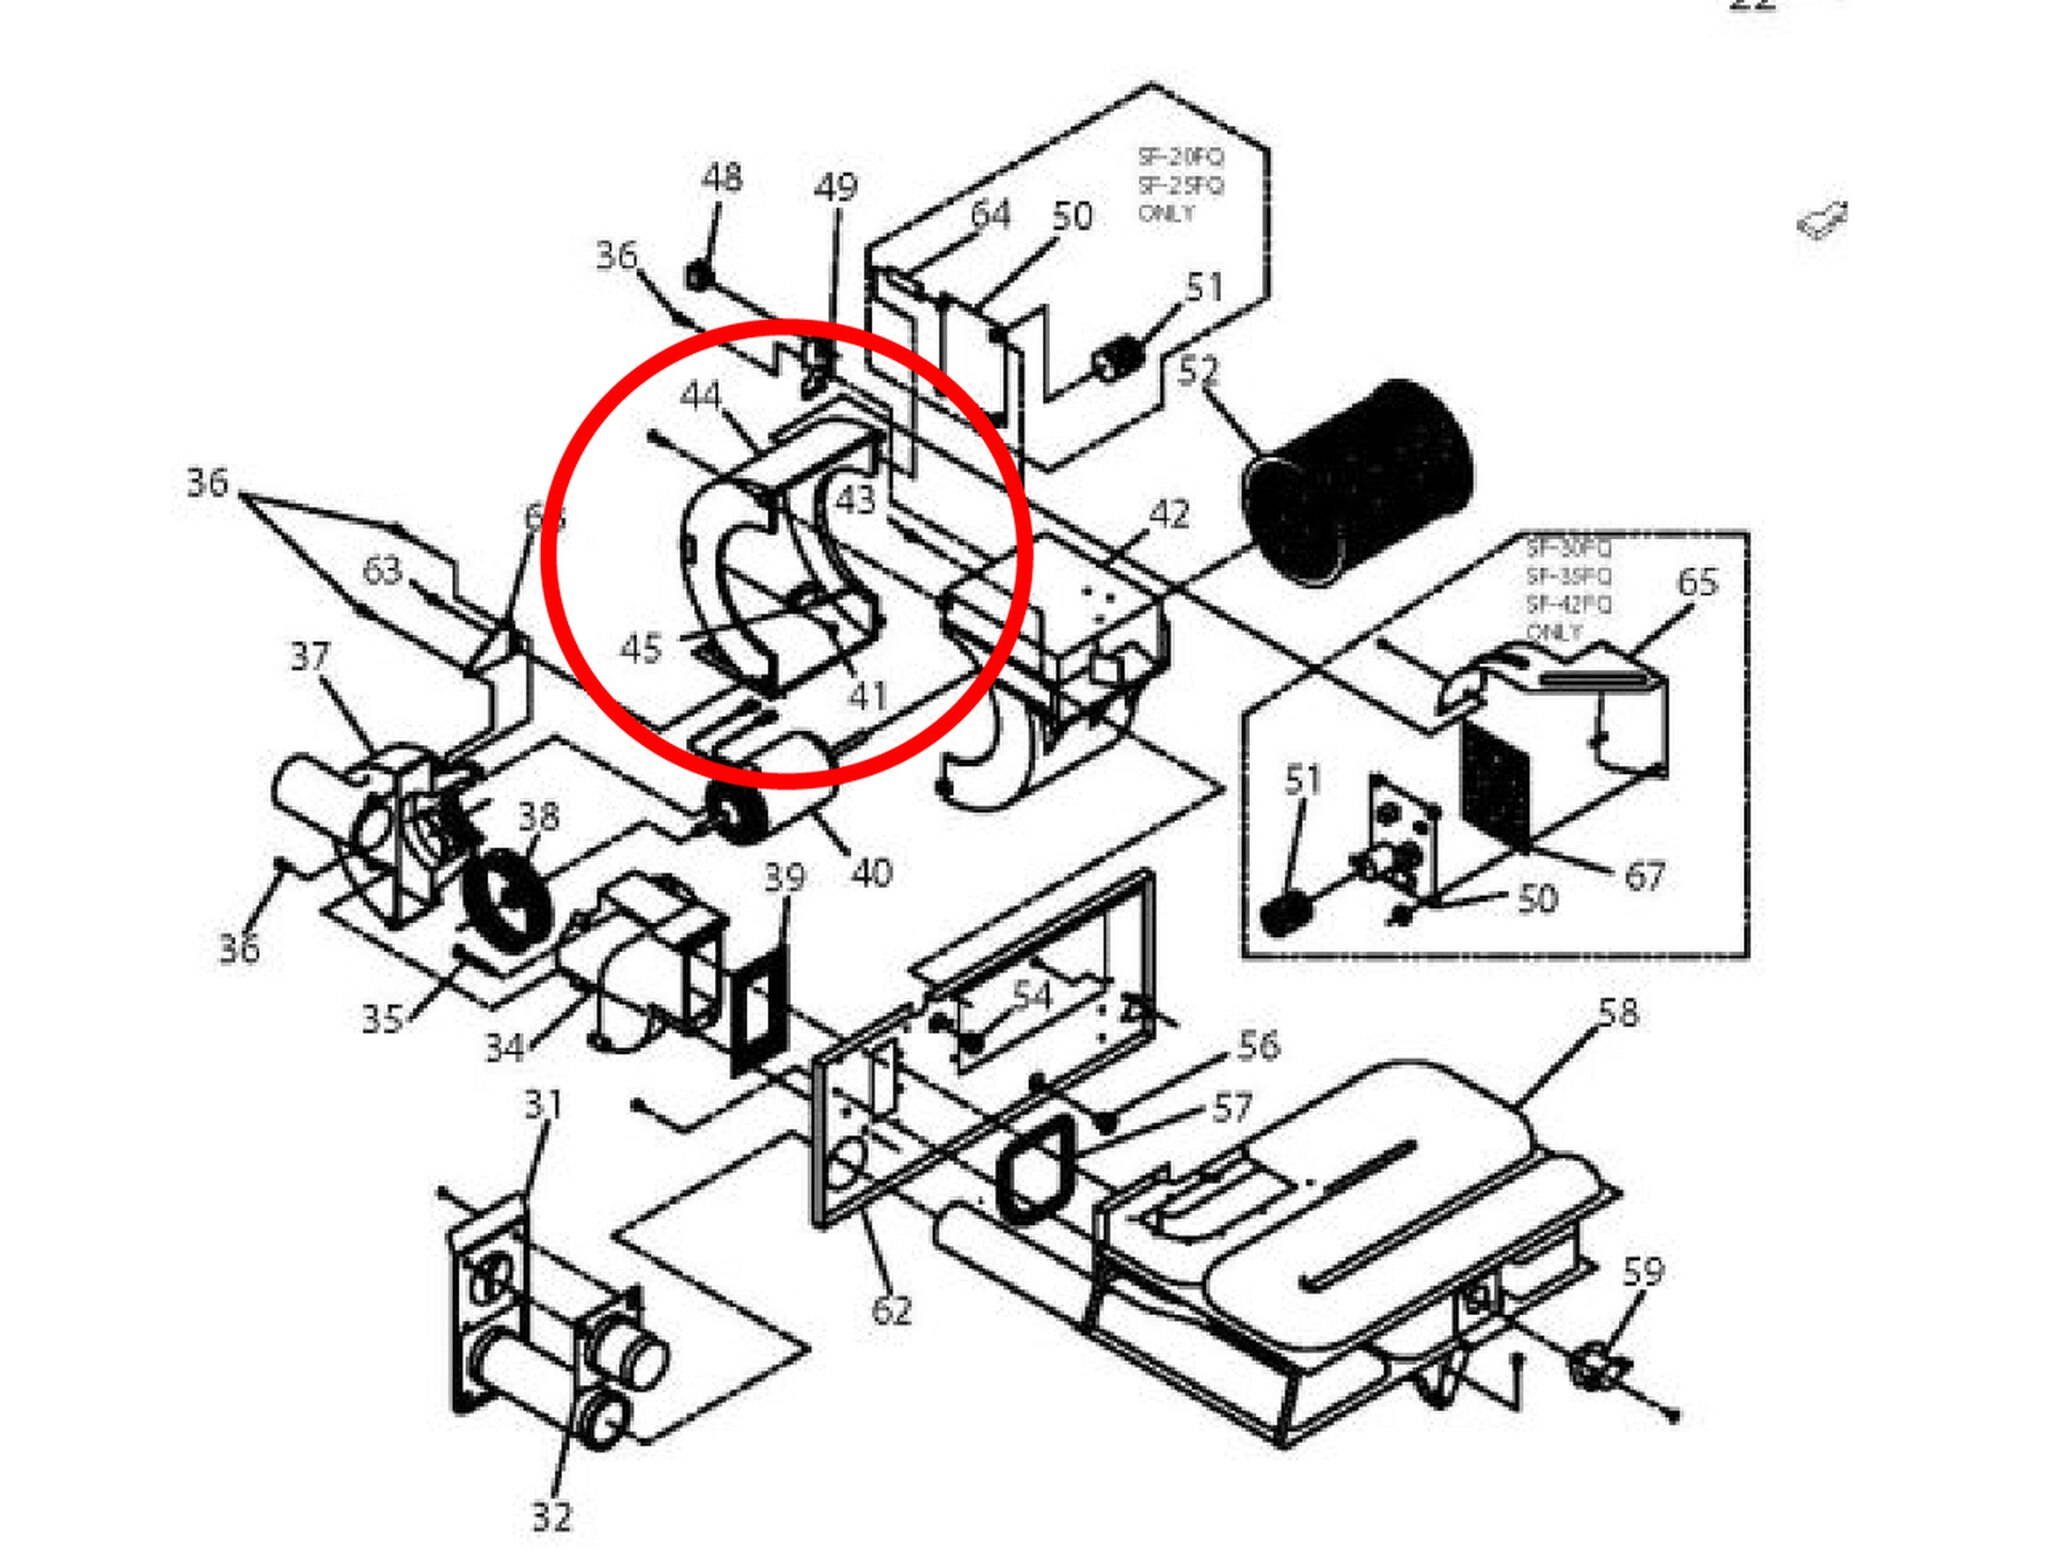 [DIAGRAM] Suburban Rv Furnace Wiring Diagram Sf 35 FULL